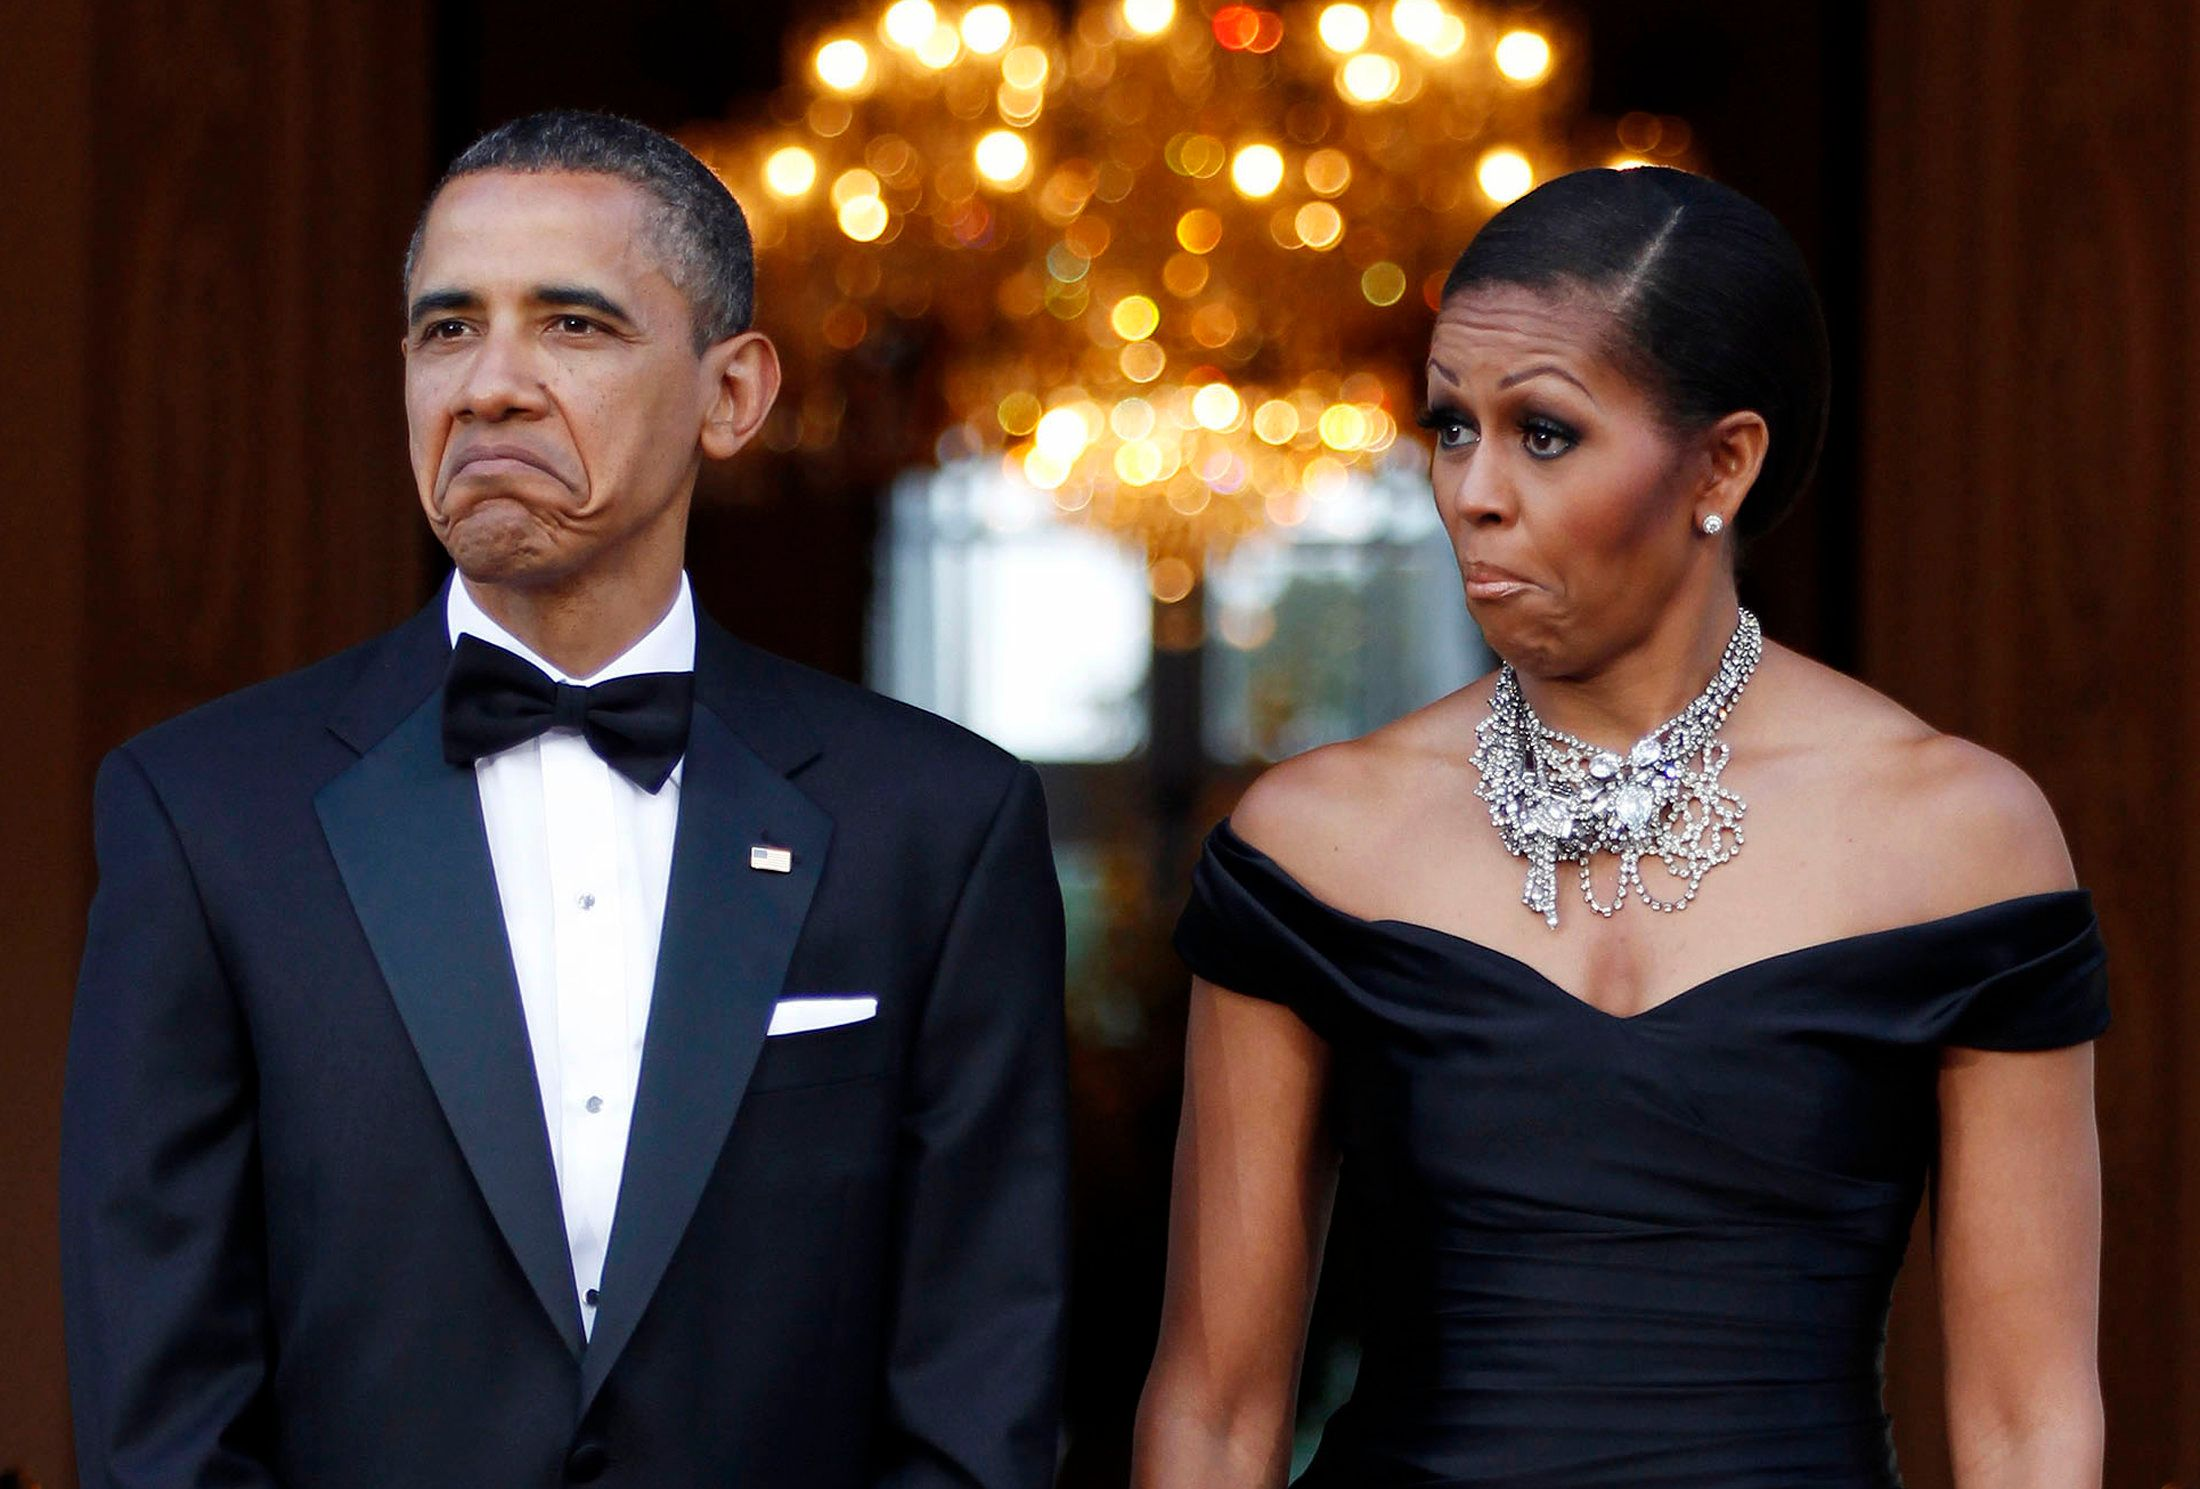 Probably what Obama's face looked like when he heard about the